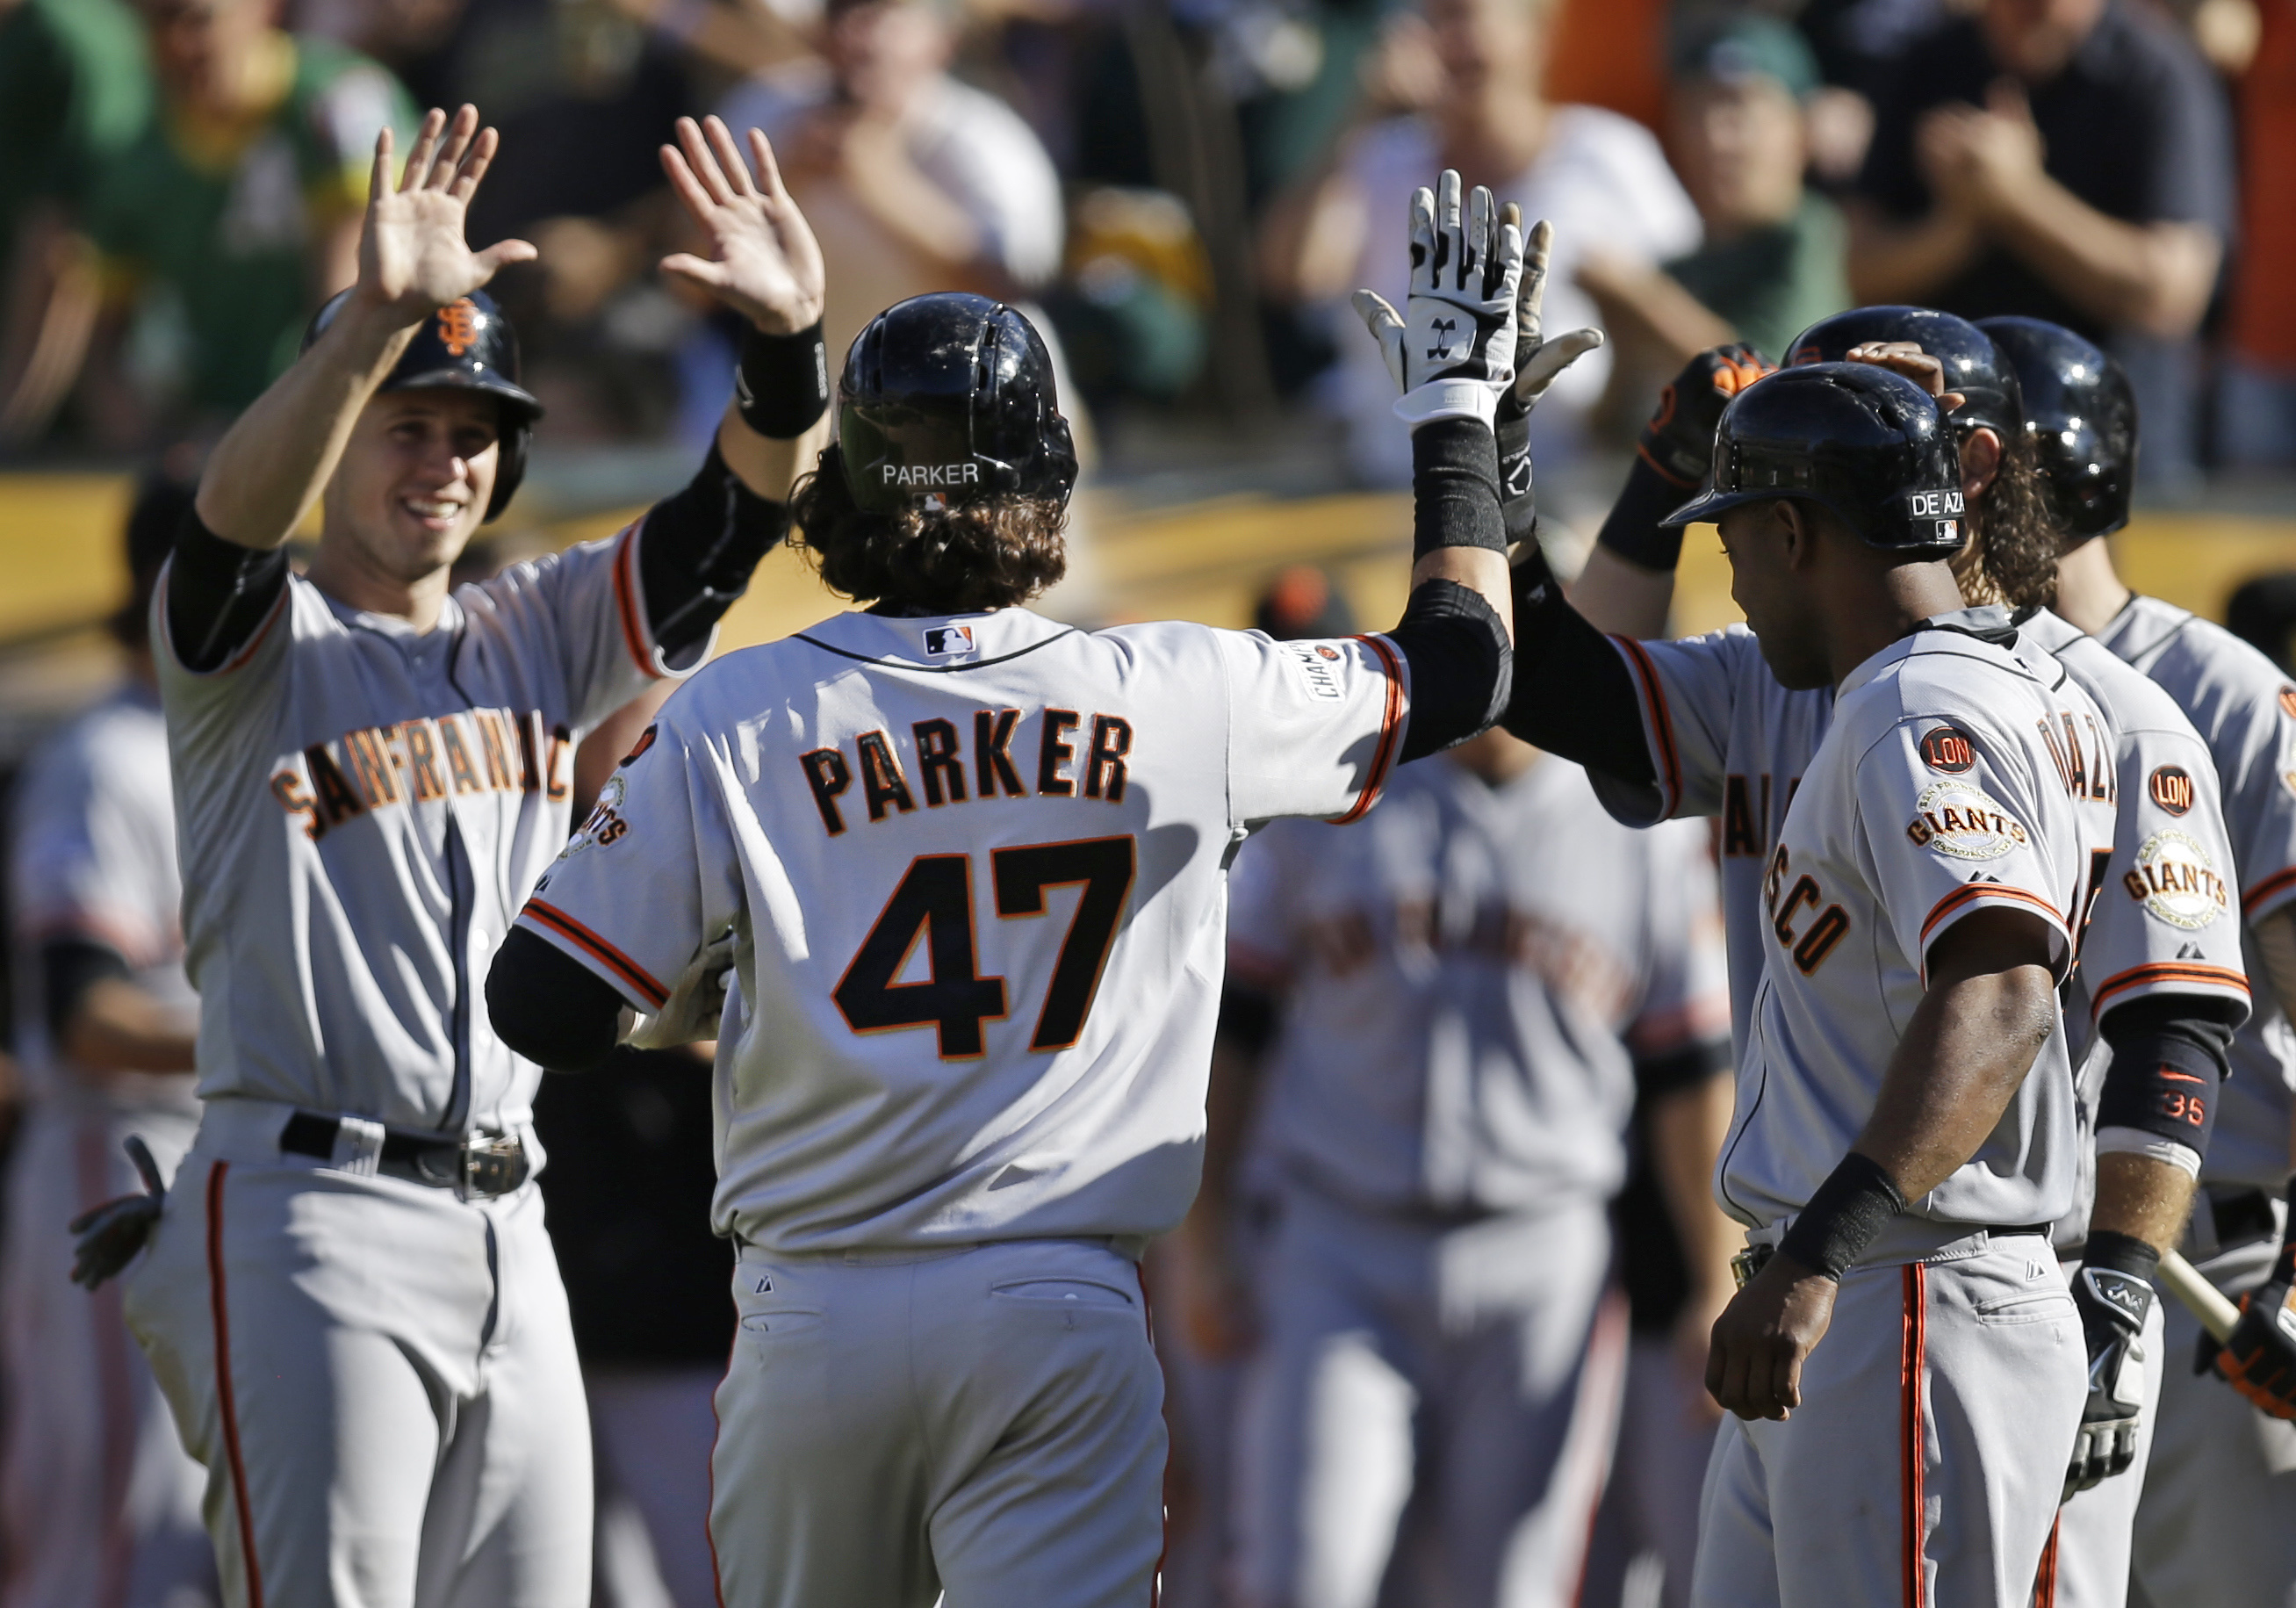 San Francisco Giants' Jarrett Parker (47) is congratulated by teammates after hitting a grand slam off Oakland Athletics' Ryan Dull in the eighth inning of a baseball game Saturday, Sept. 26, 2015, in Oakland, Calif. (AP Photo/Ben Margot)